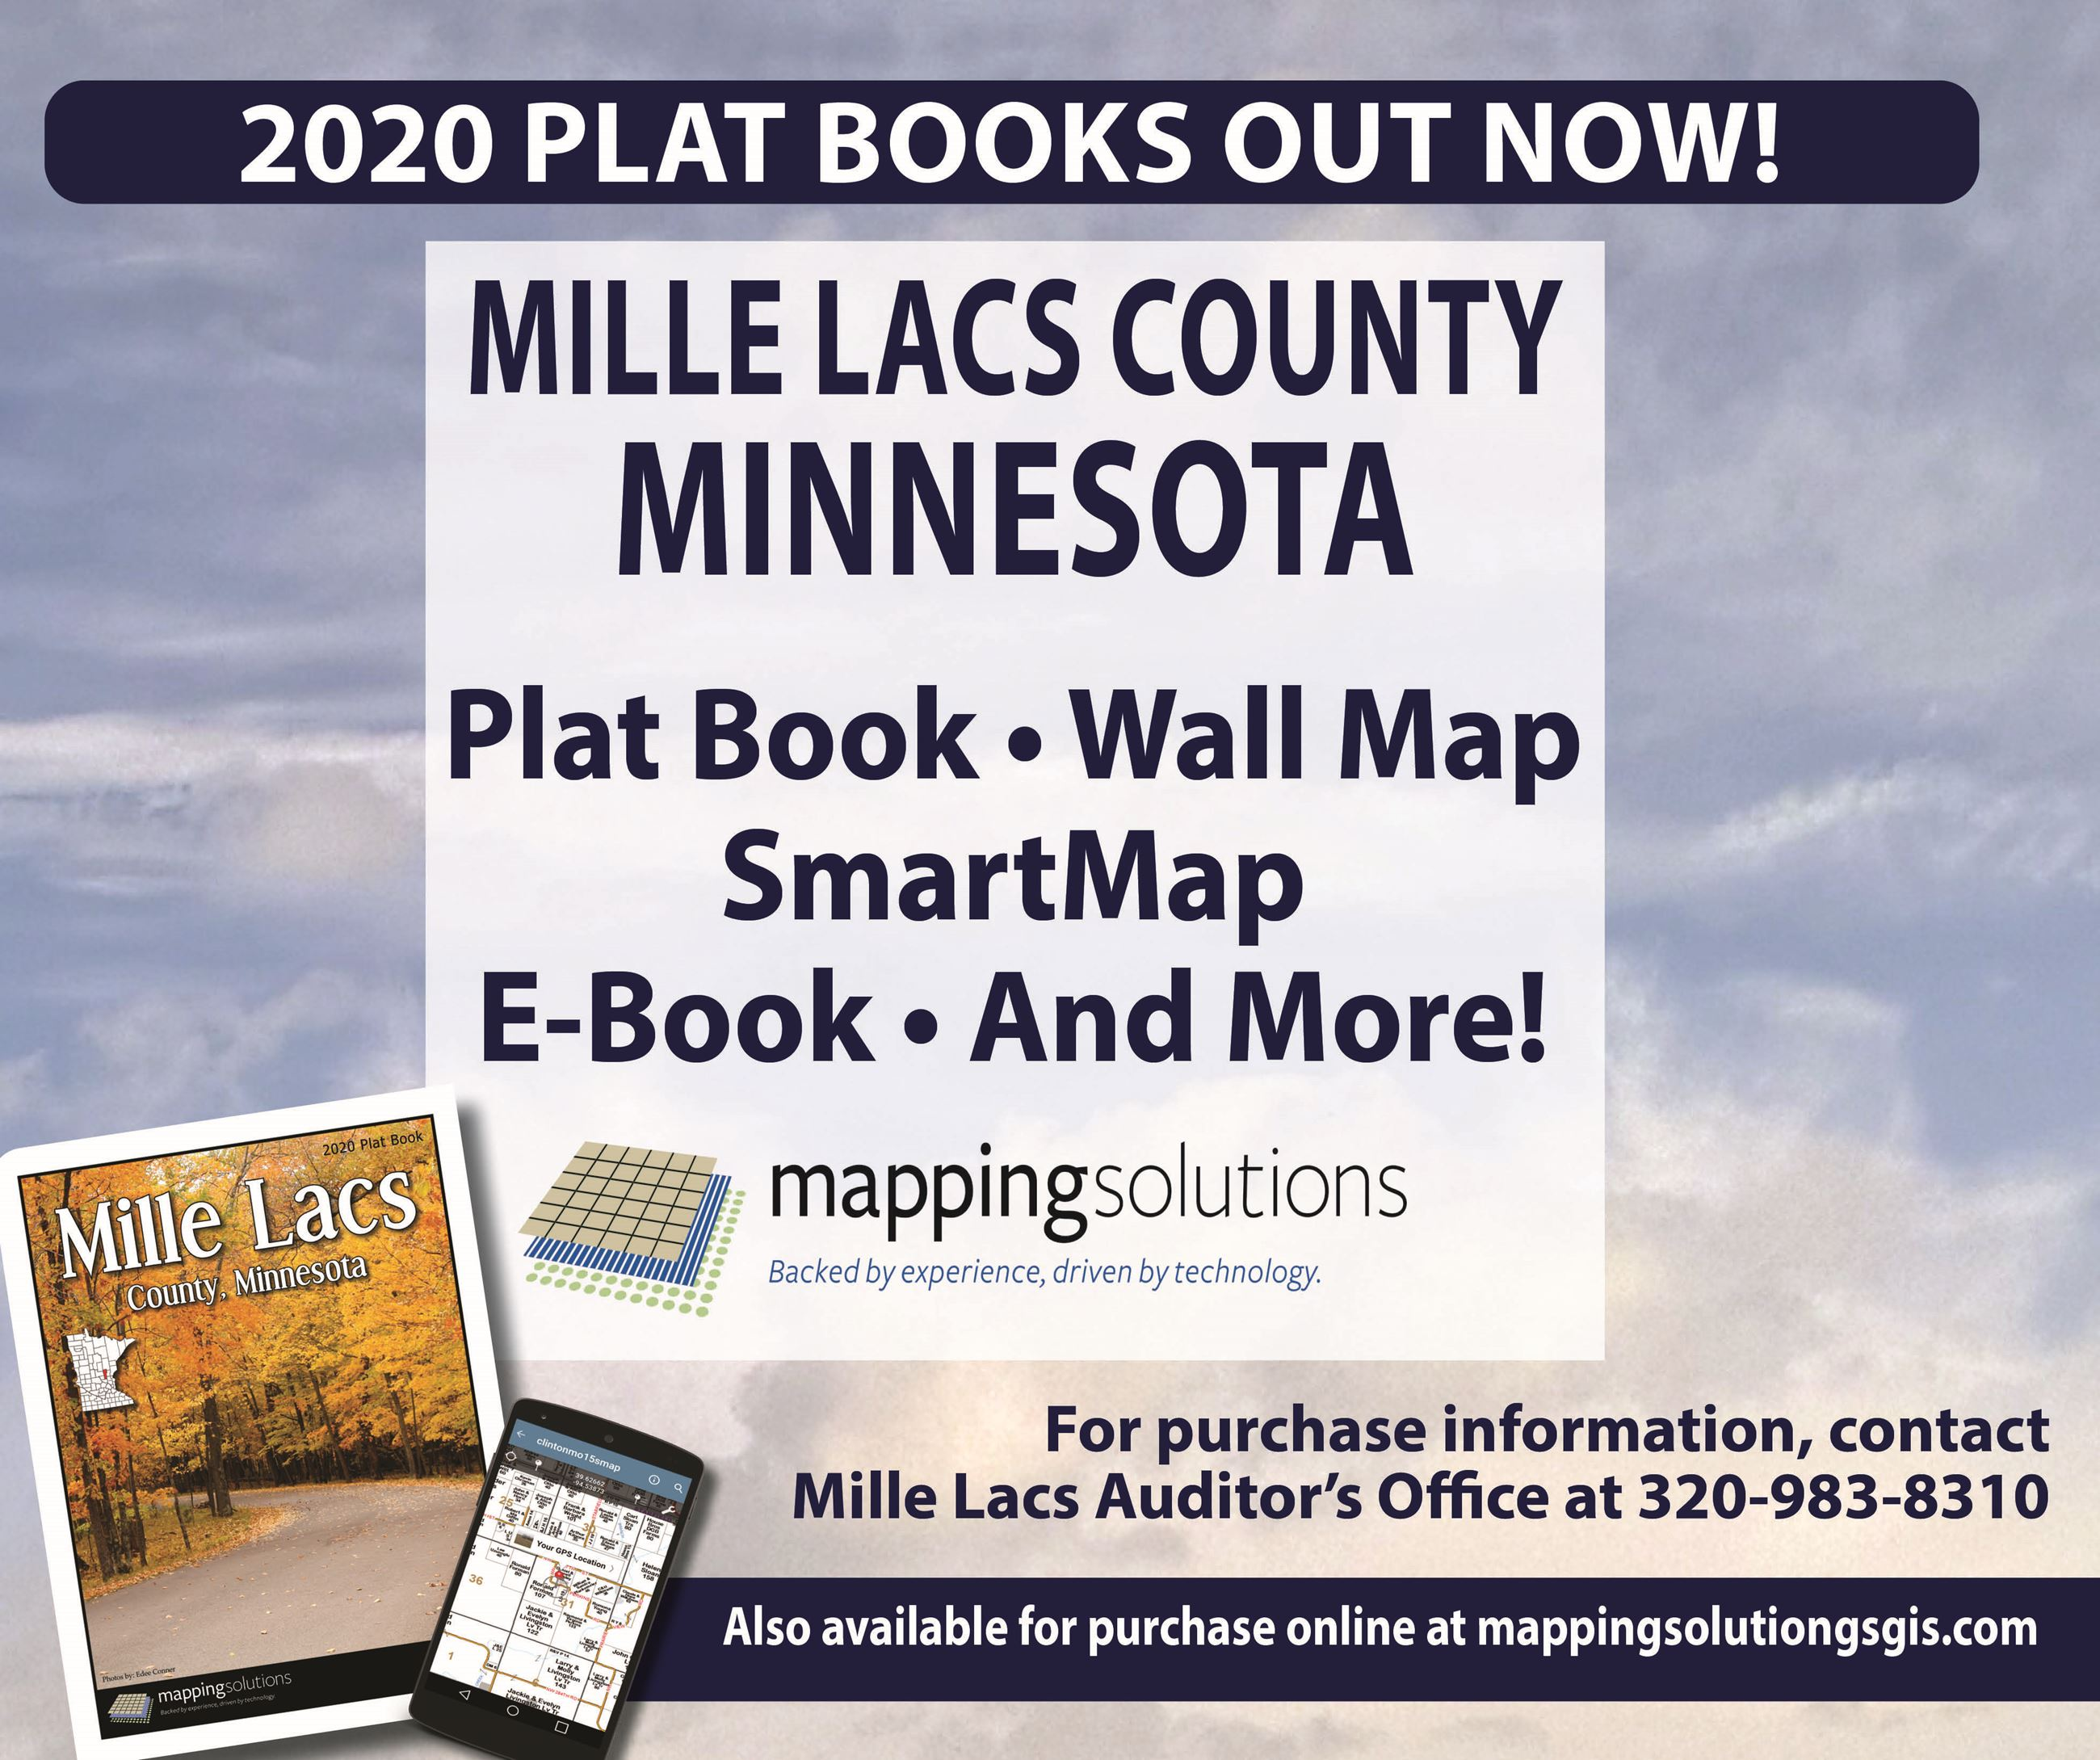 񓠄 Plat Books out now! Mille Lacs County, Minnesota. Plat Book, Wall Map, SmartMap, E-book""